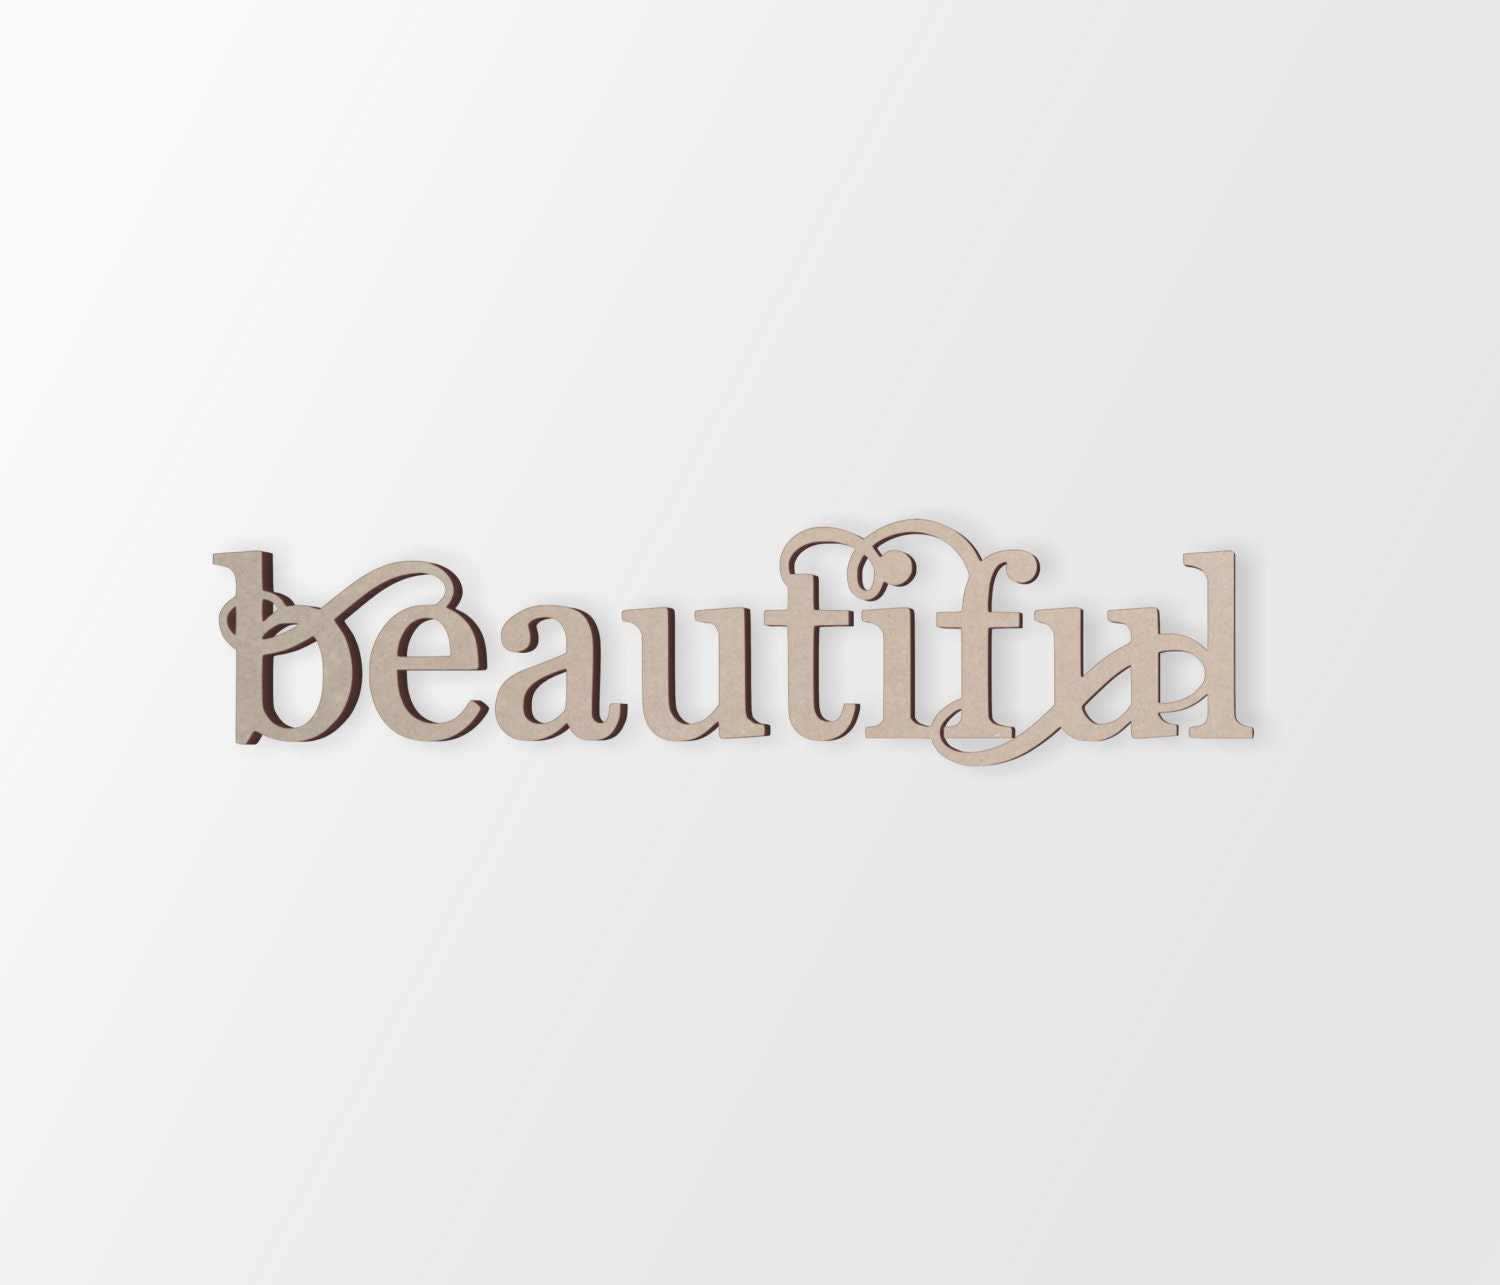 Word Art Home Decor: Wall Decor Word Art Beautiful Cutout Home